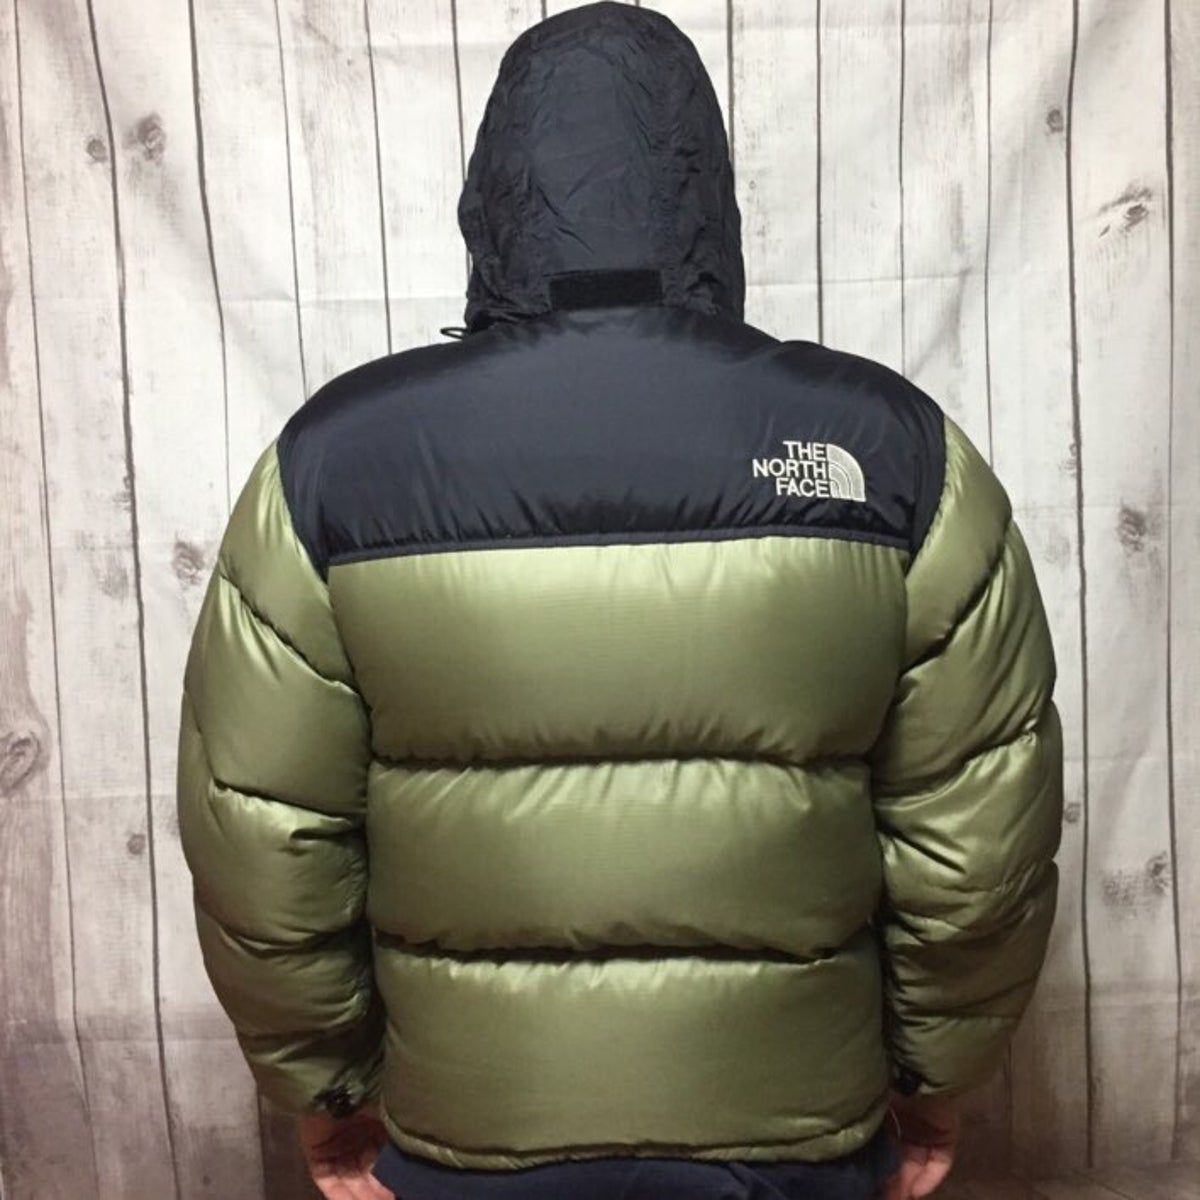 The North Face Nuptse 700 Down Puffer M The North Face North Face Nuptse North Face Puffer Jacket [ 1200 x 1200 Pixel ]